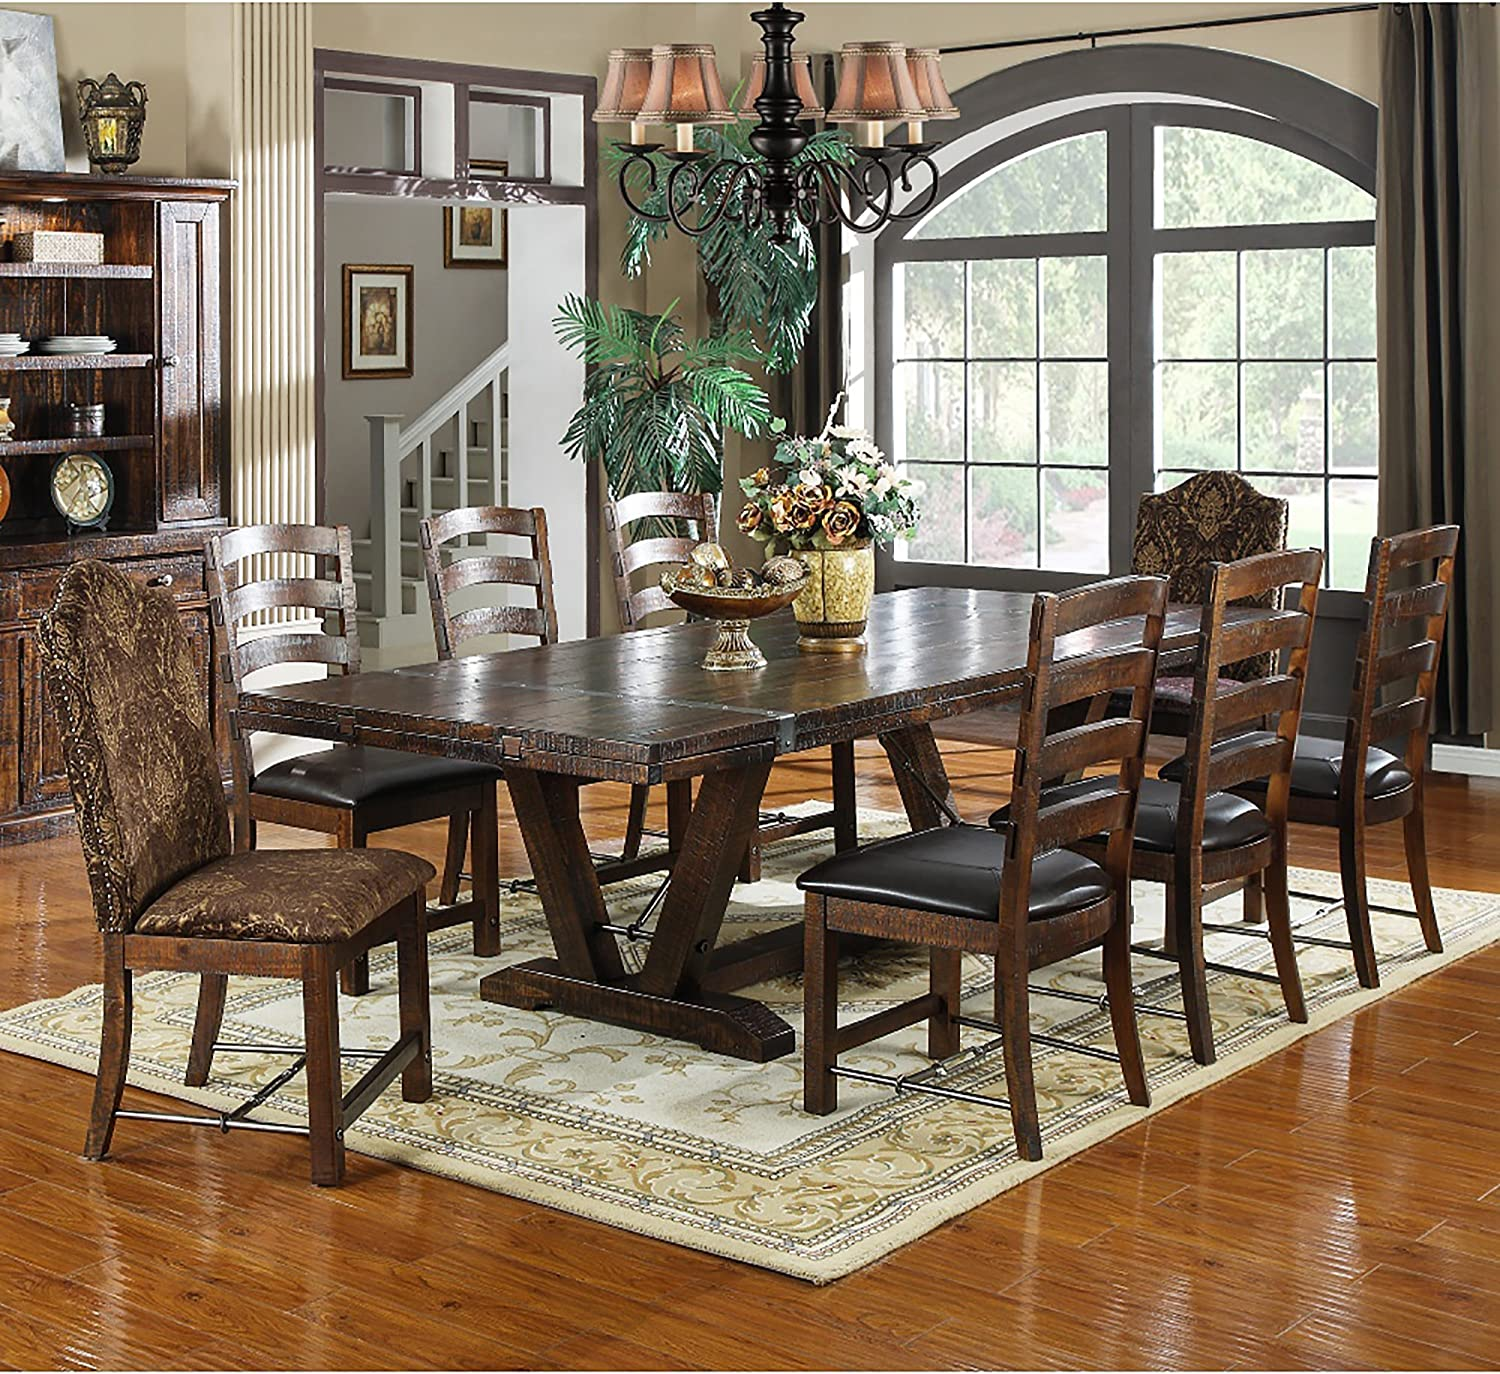 Amazon Com Extra Long Dining Table Of Solid Wood With 2 Extendable Leaves In Country Style For Party Sized Seating Up To 8 People Plus Tables